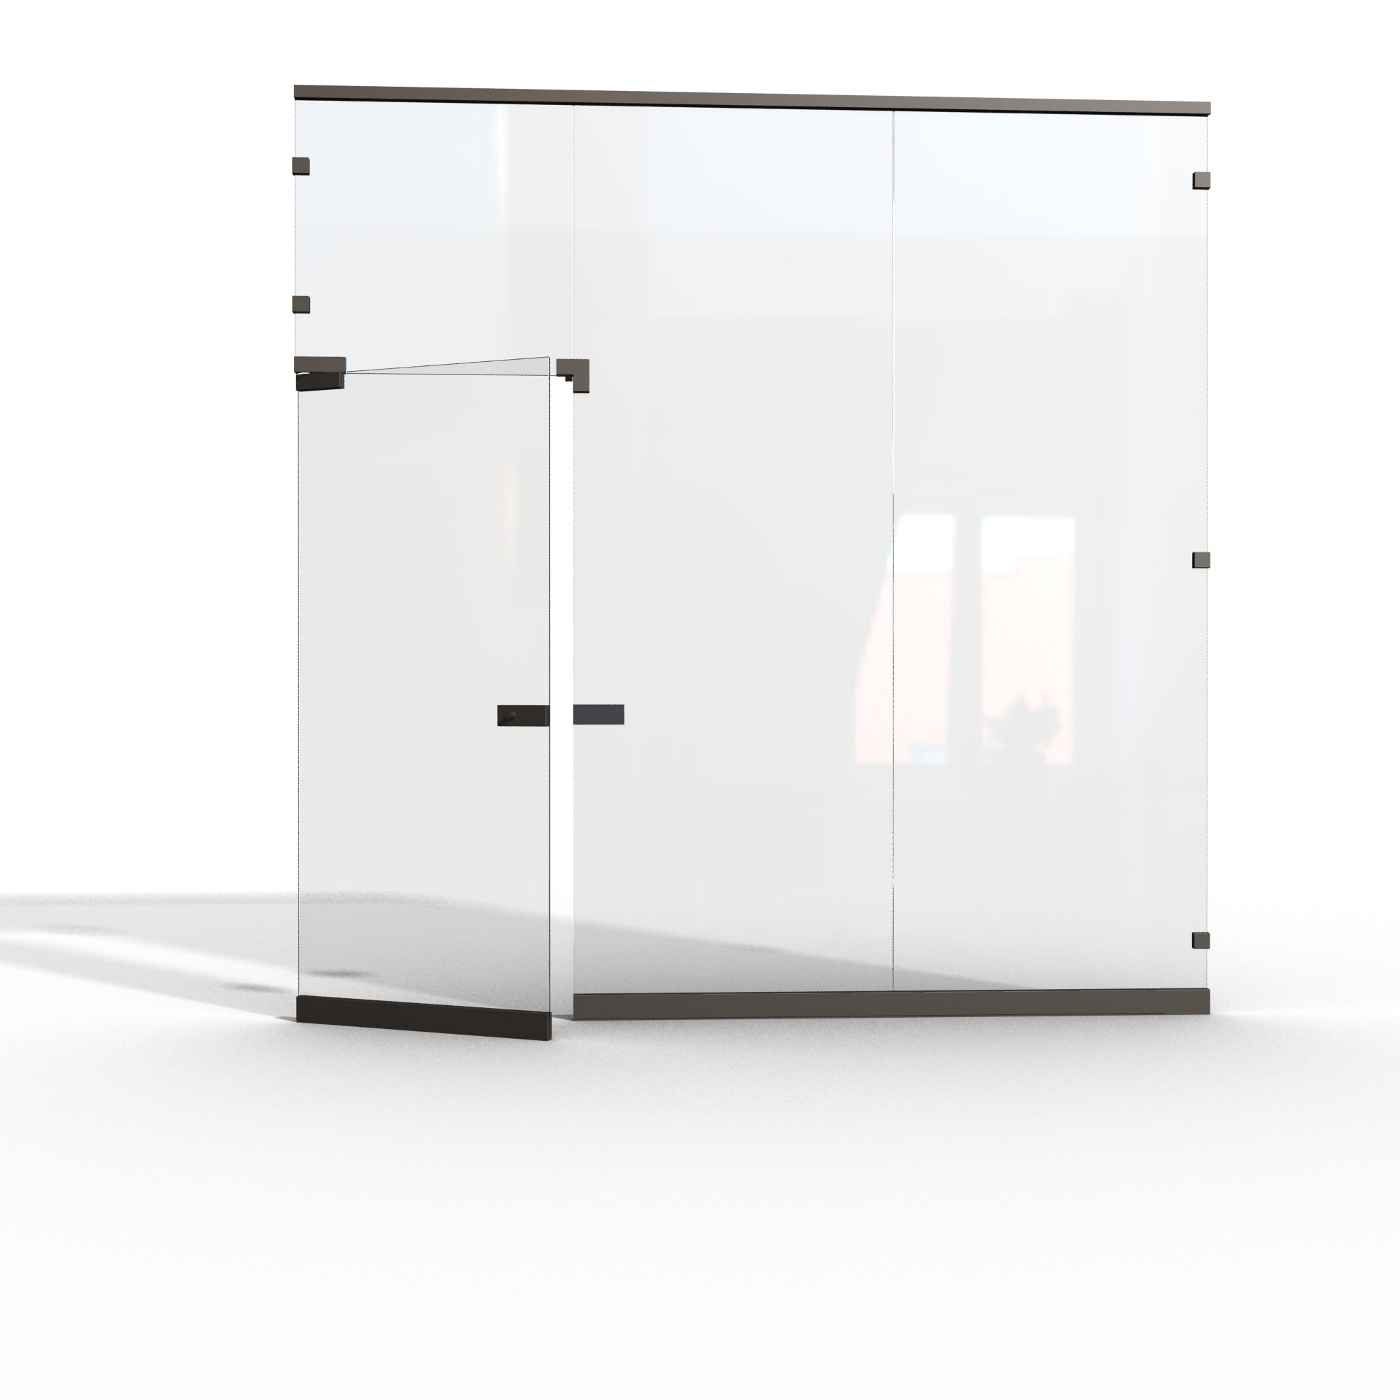 Making your working space unique and enjoyable with office Office partition walls with doors